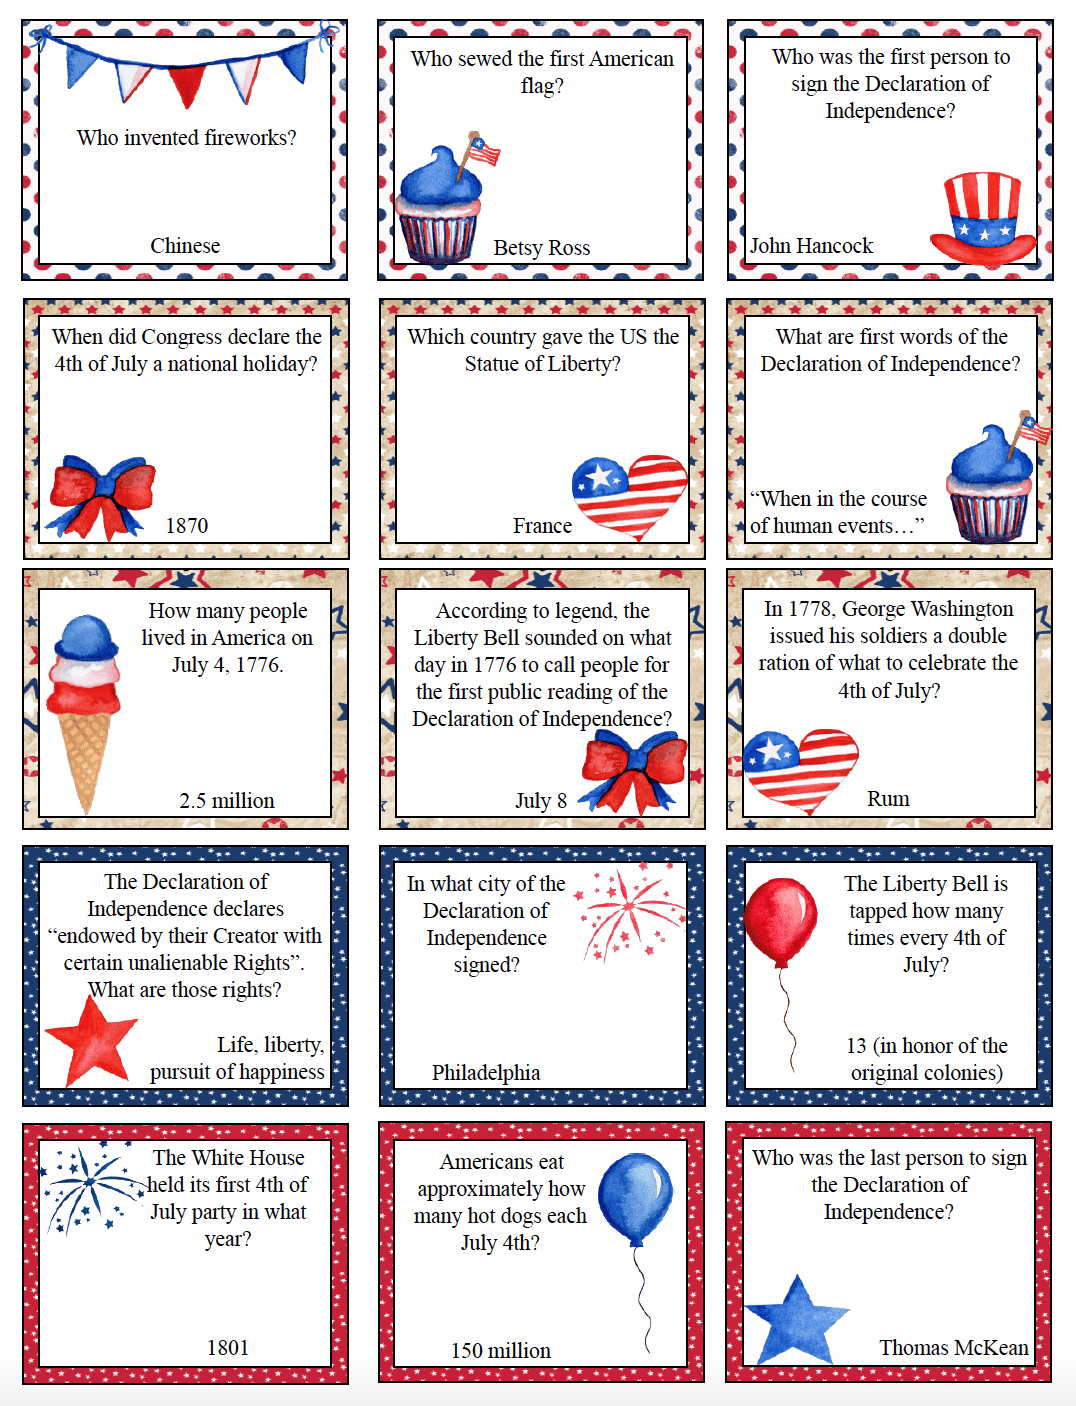 Free Printable 4th of July Trivia. Add some fun to any July 4th with free printable Fourth of July trivia. 30 patriotic questions. #free #printable #freeprintable #july4 #july4trivia #fourthofjulytrivia